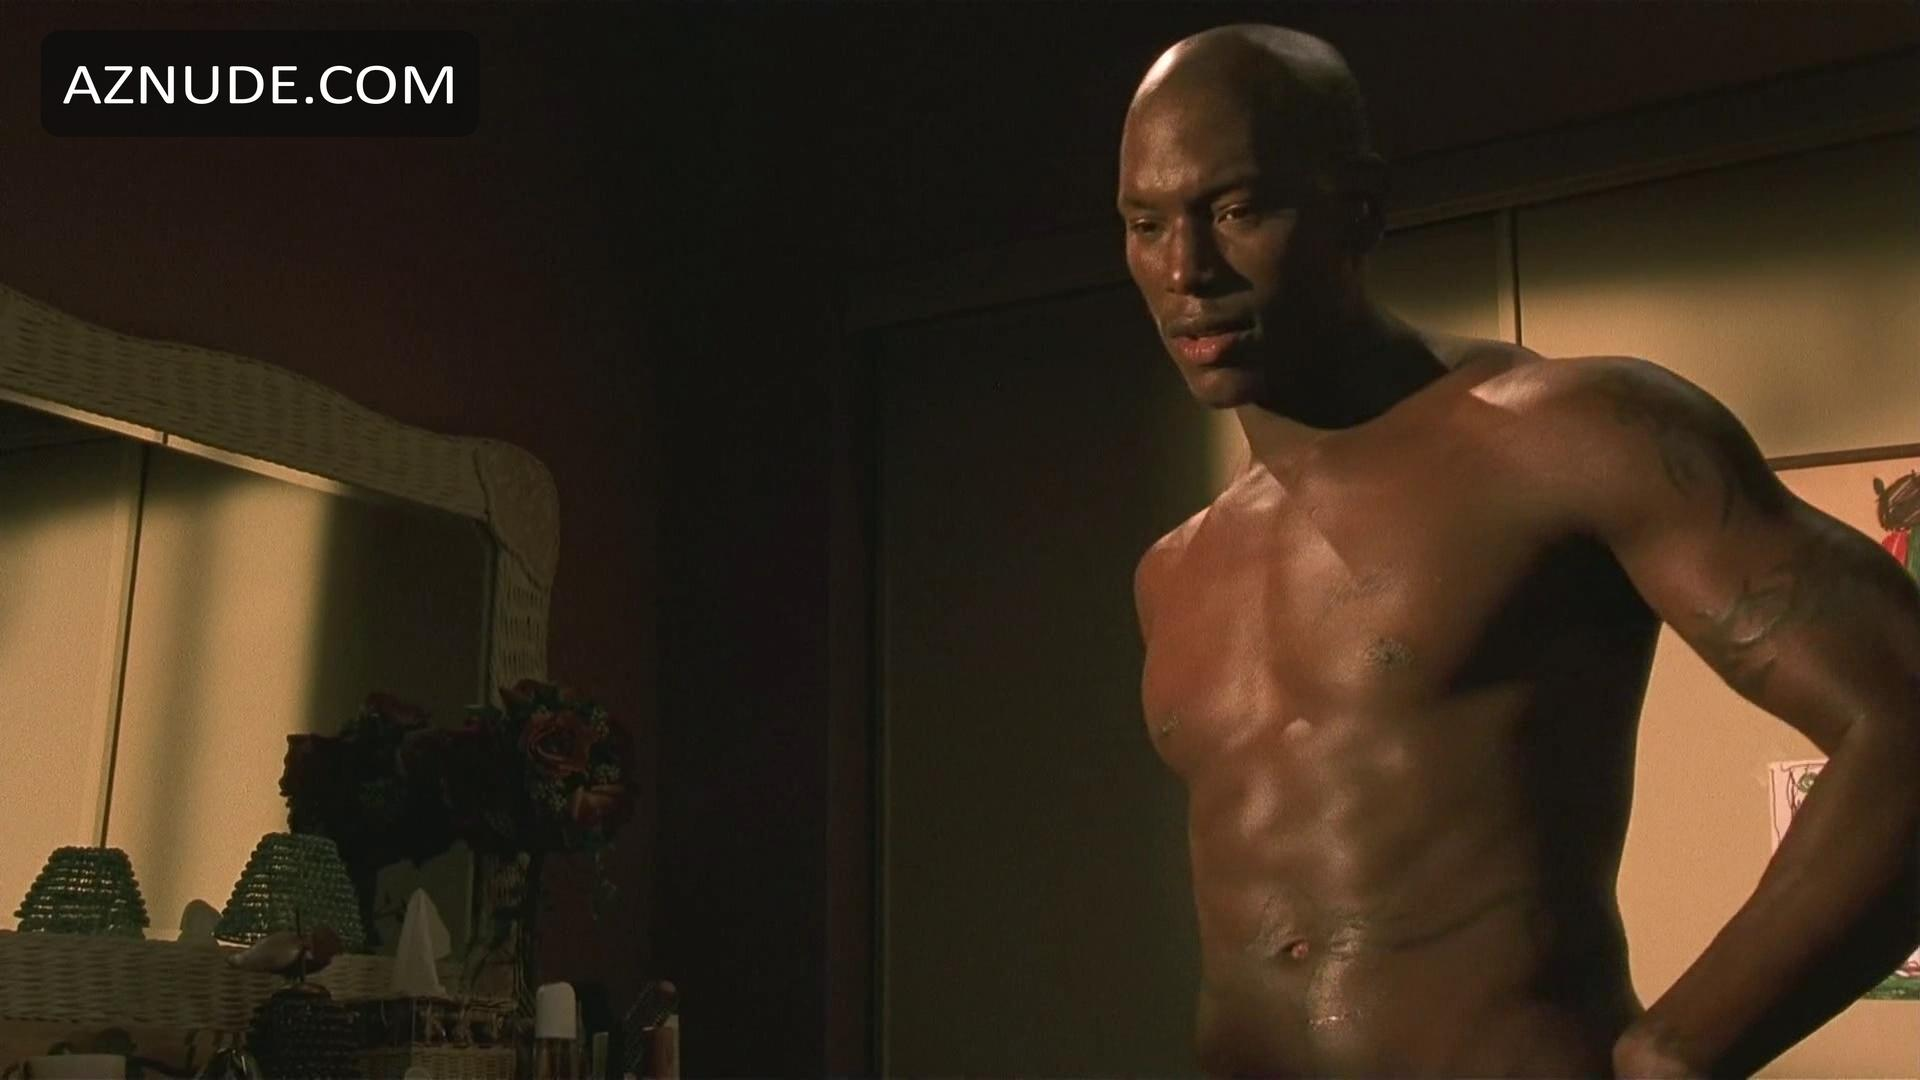 Precisely Nude images of tyrese gibson happens